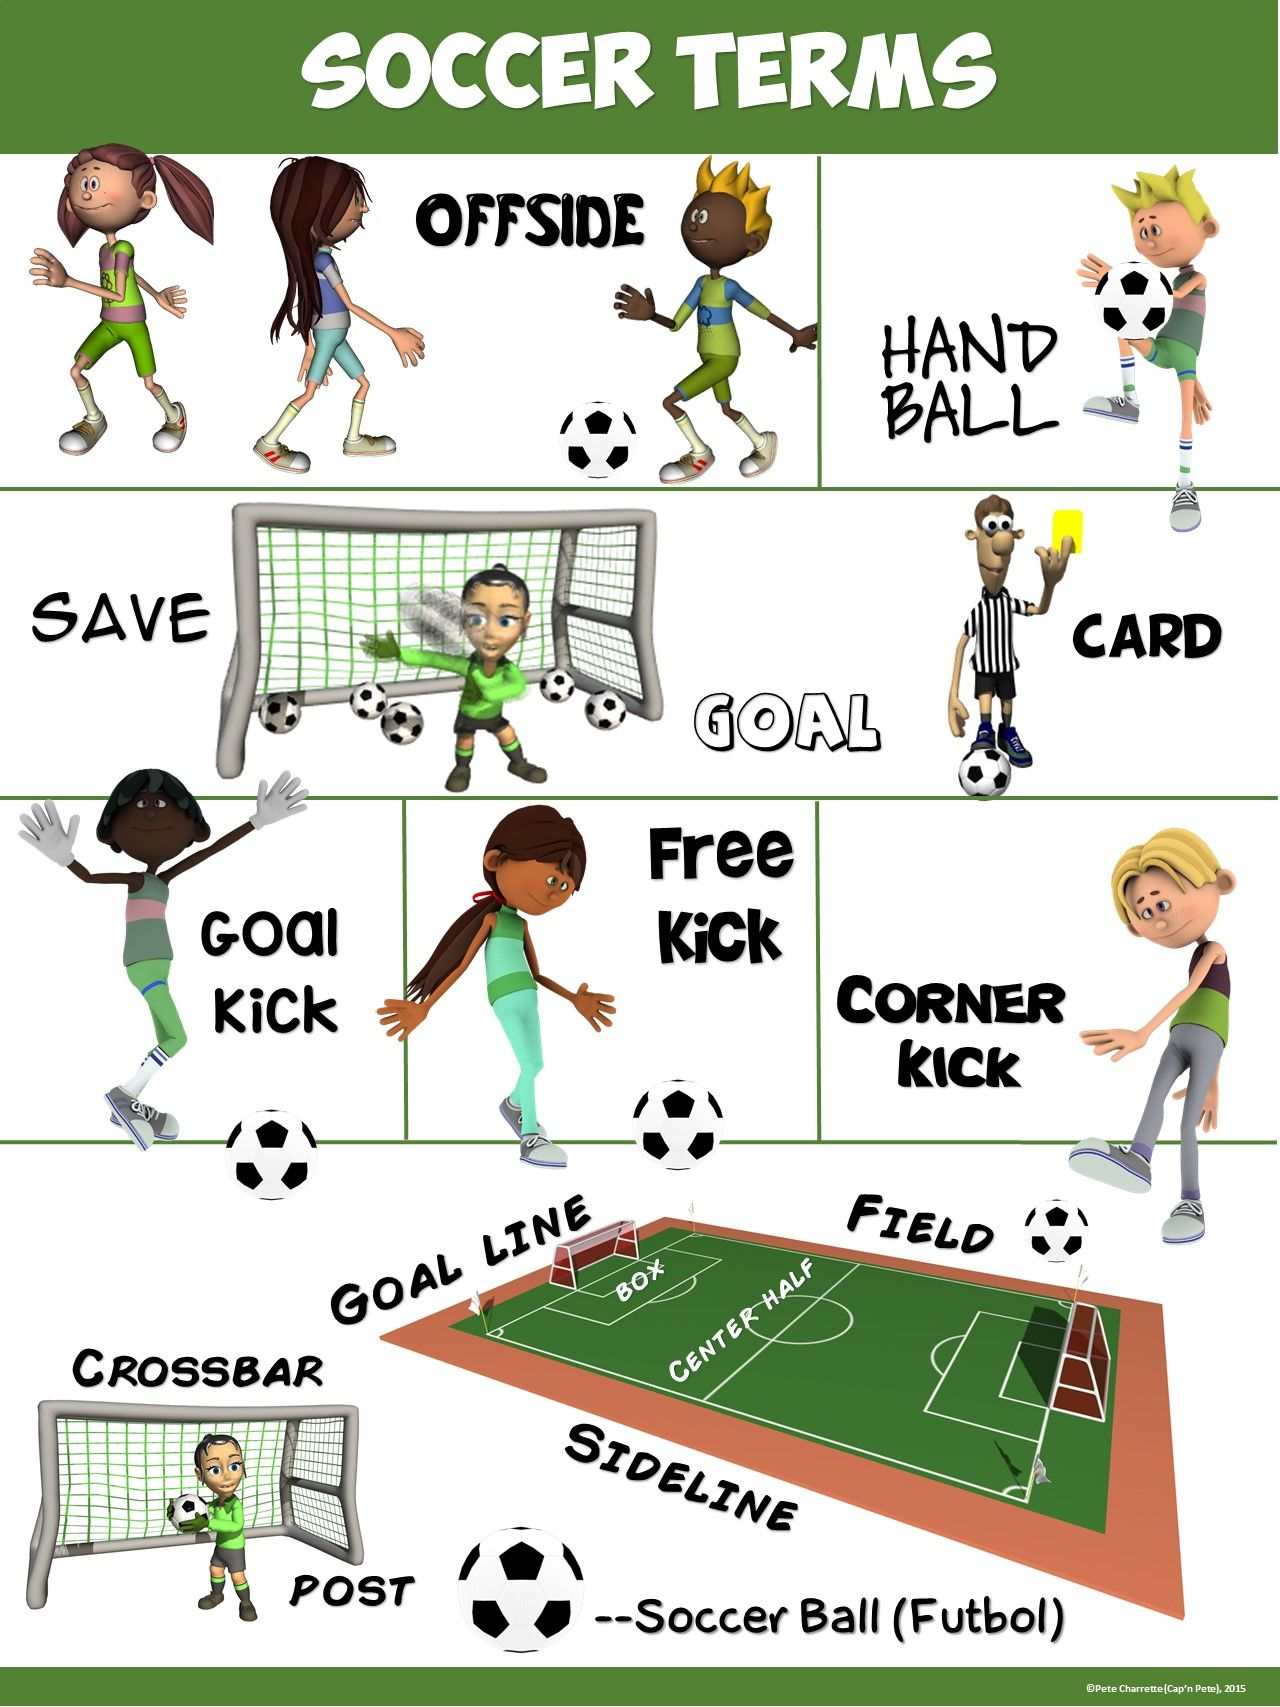 pe poster soccer terms kids sports soccer drills for kids soccer skills soccer training. Black Bedroom Furniture Sets. Home Design Ideas